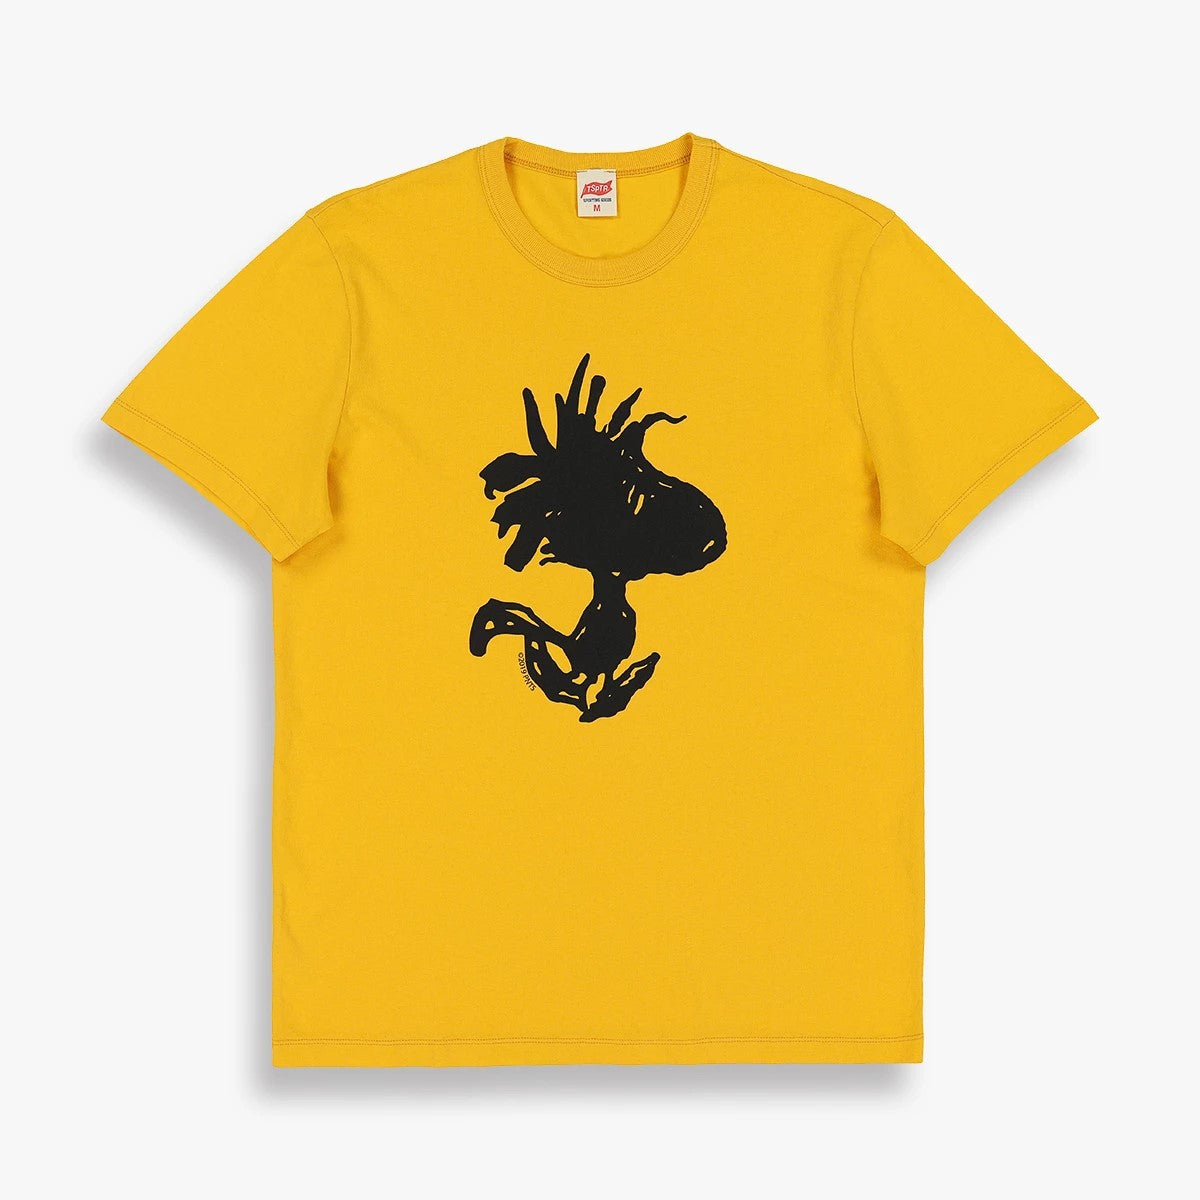 Woodstock Any Road T-Shirt in Yellow